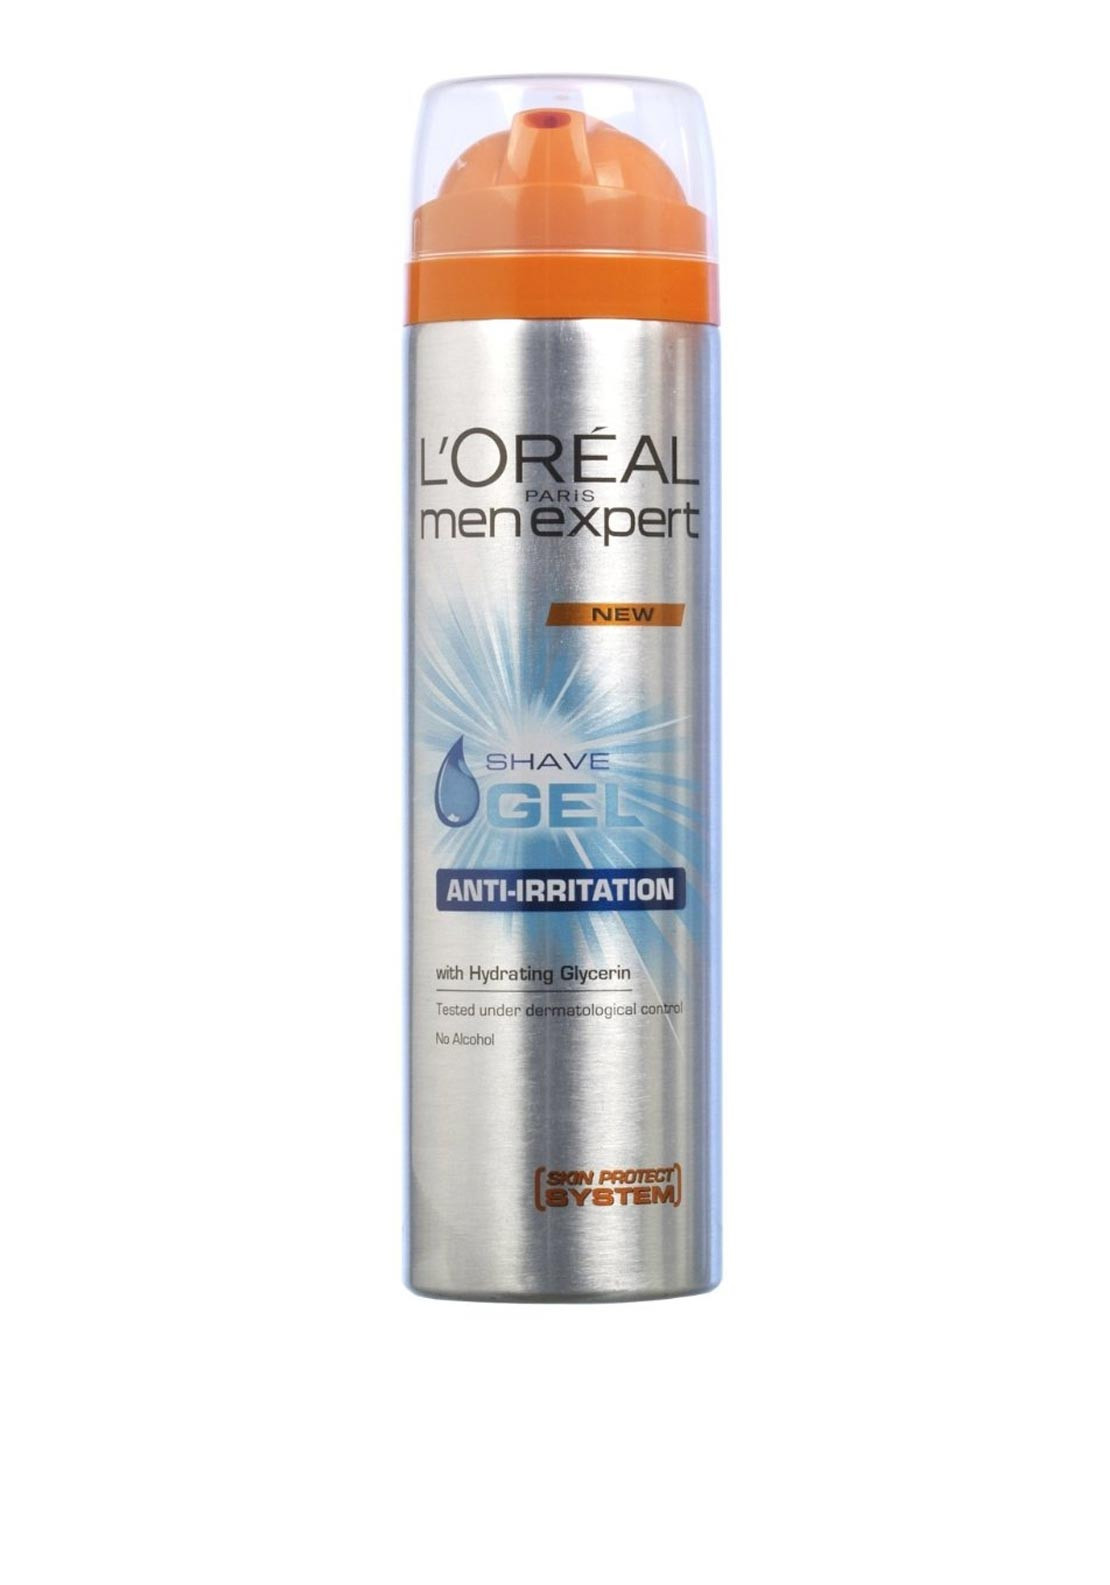 L'Oreal Men Expert Anti-Irritation Shave Gel, 200ml